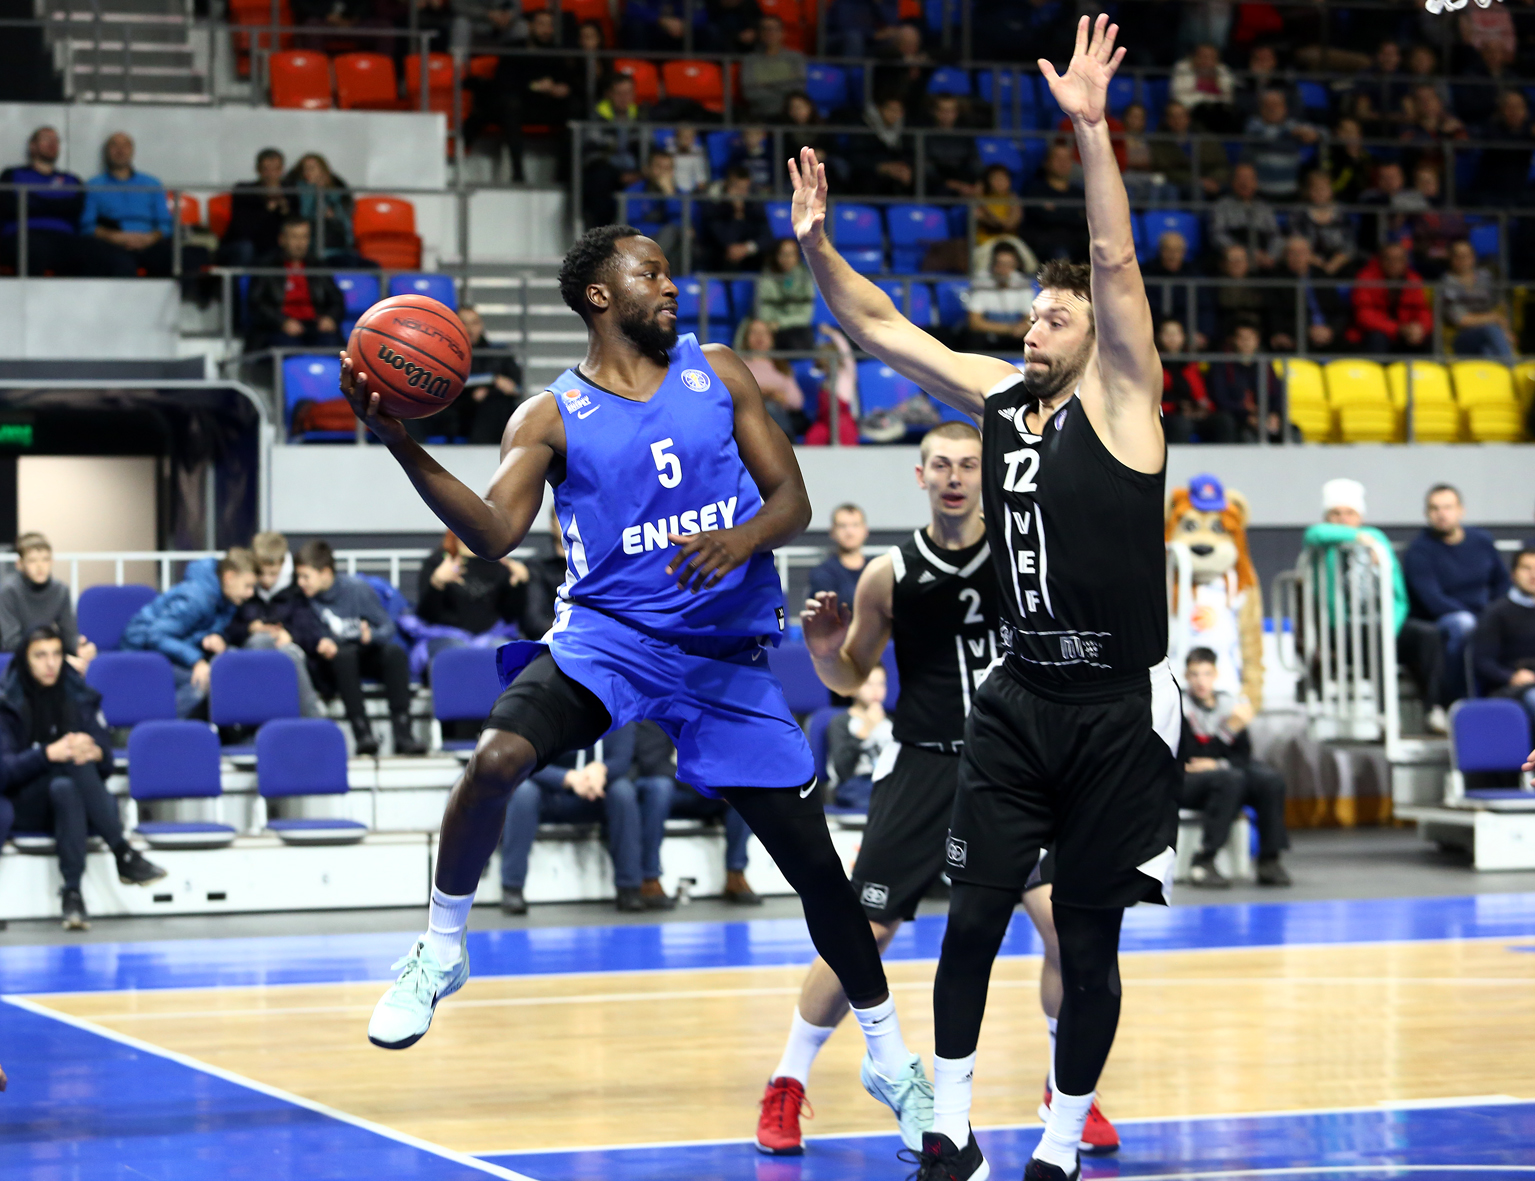 Enisey Upends VEF With Late Rally